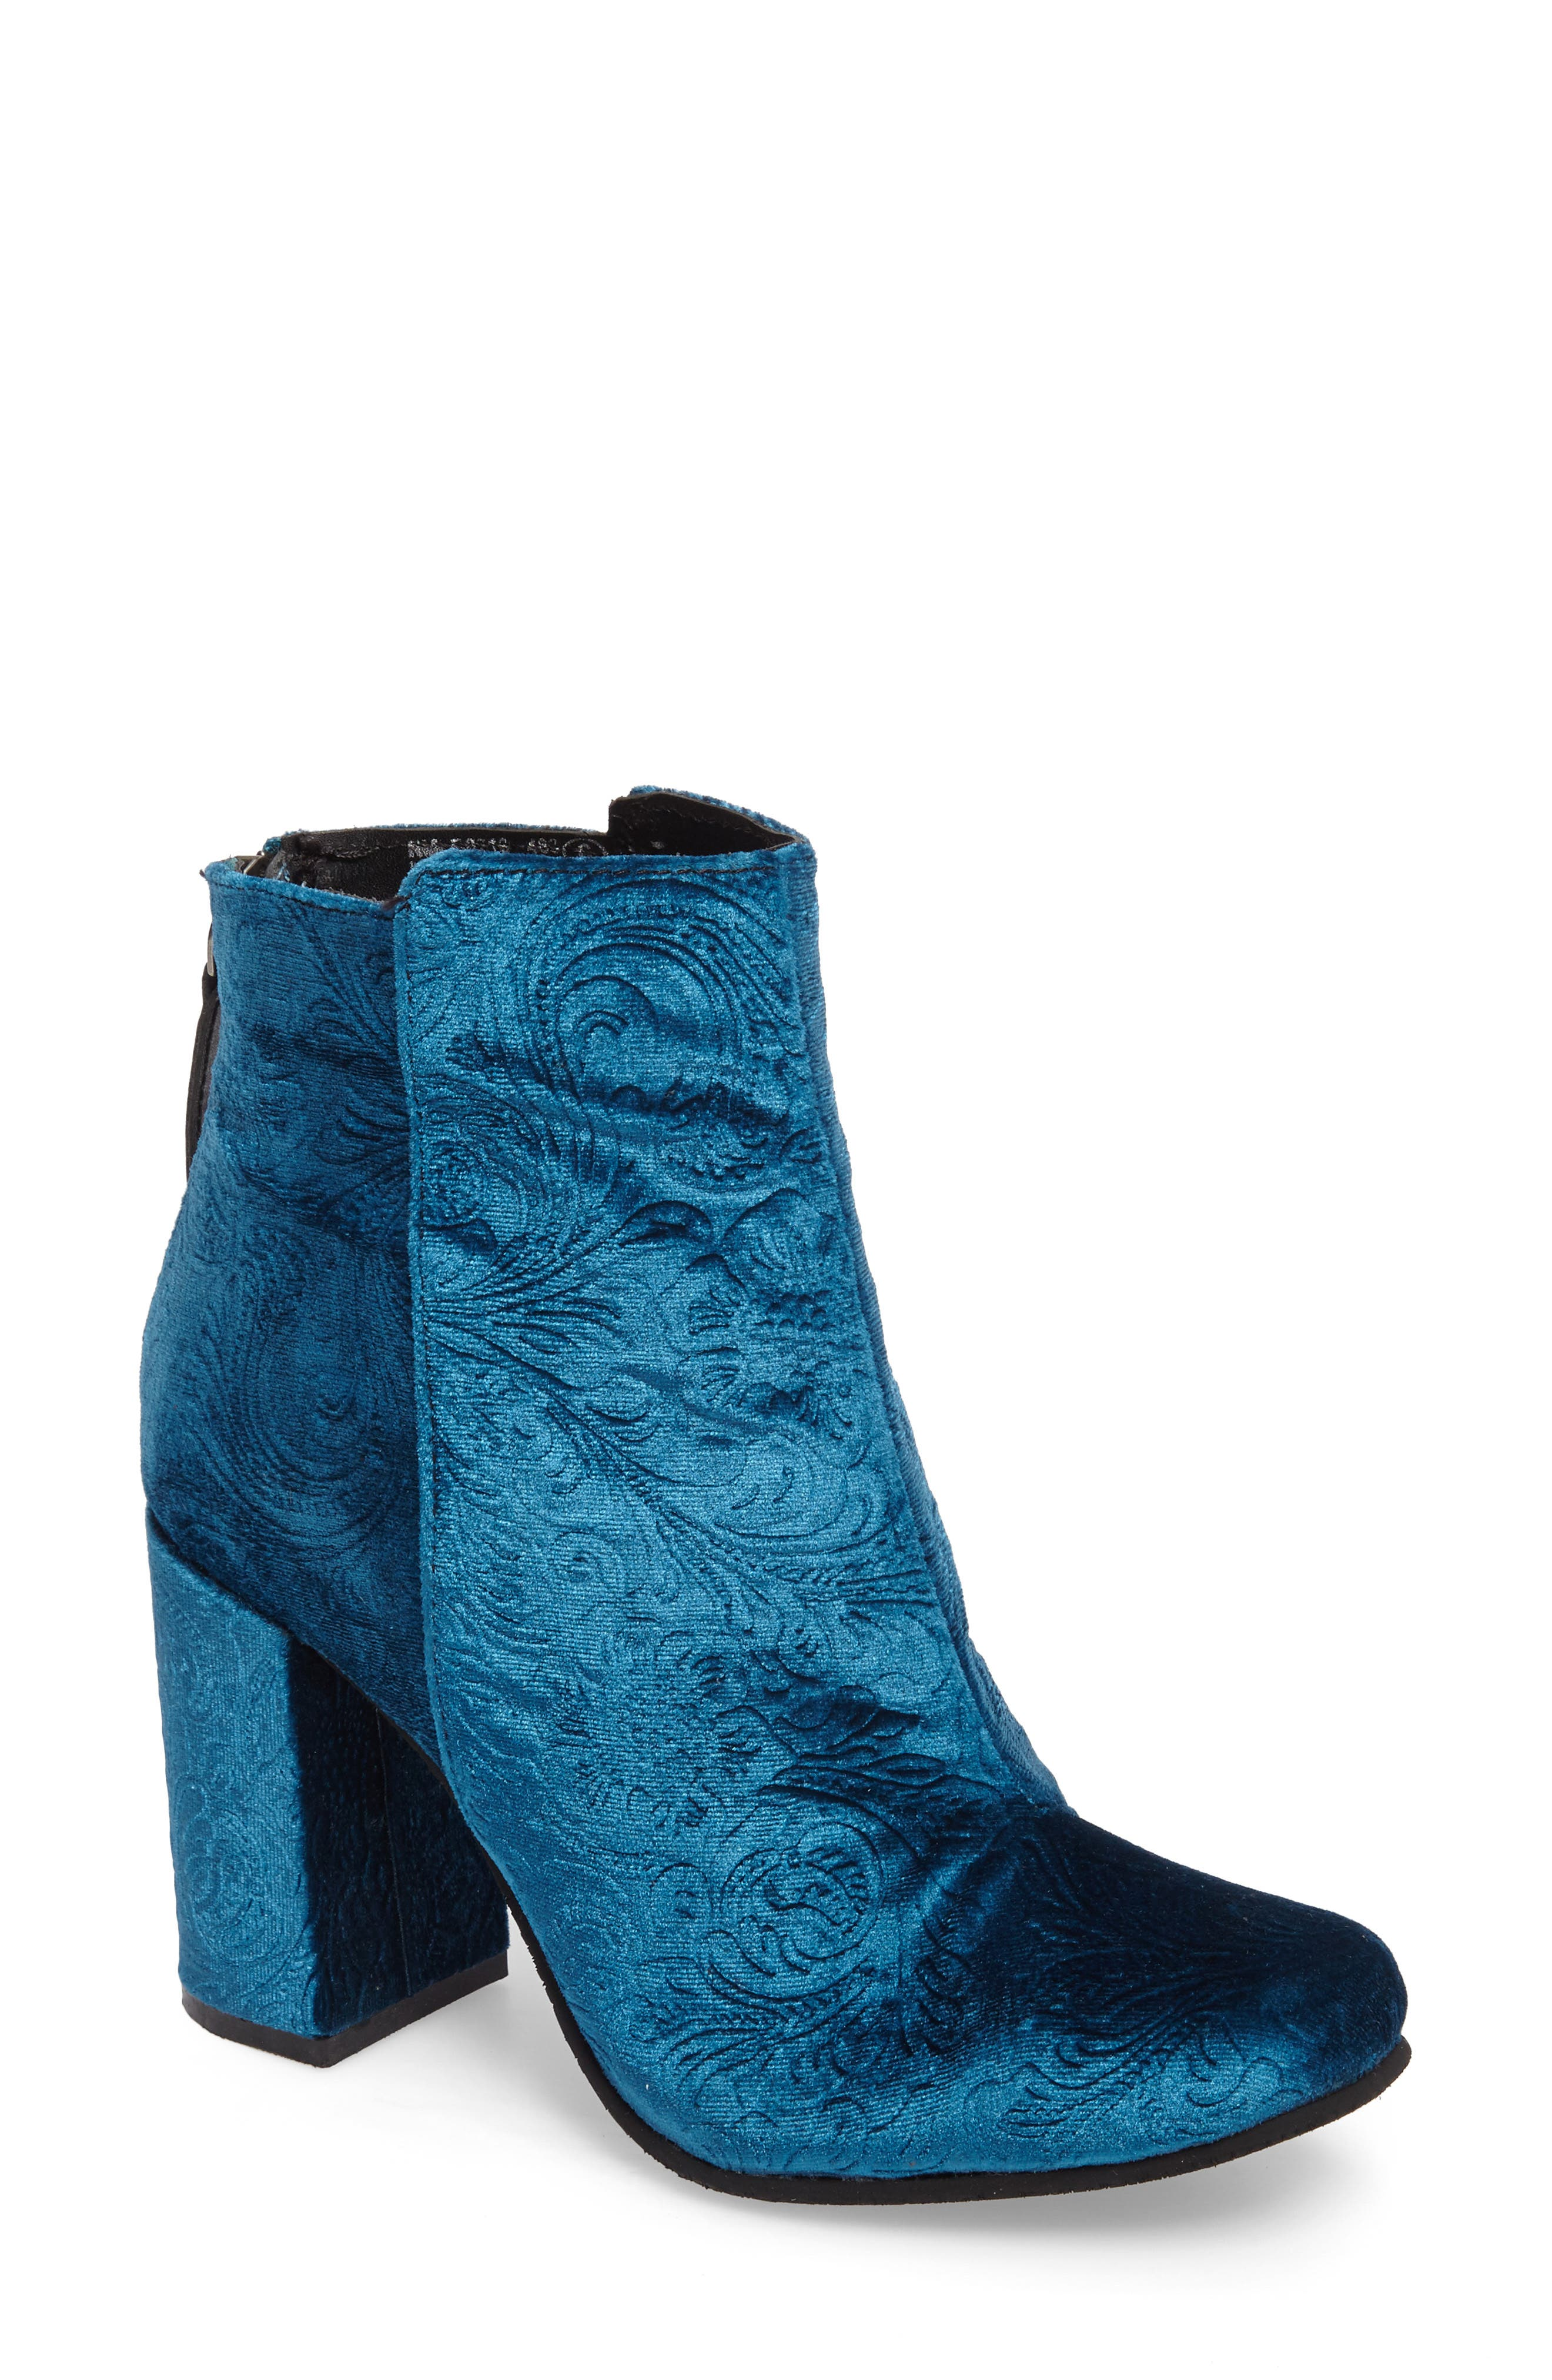 Nadonna Bootie,                         Main,                         color, Teal Fabric